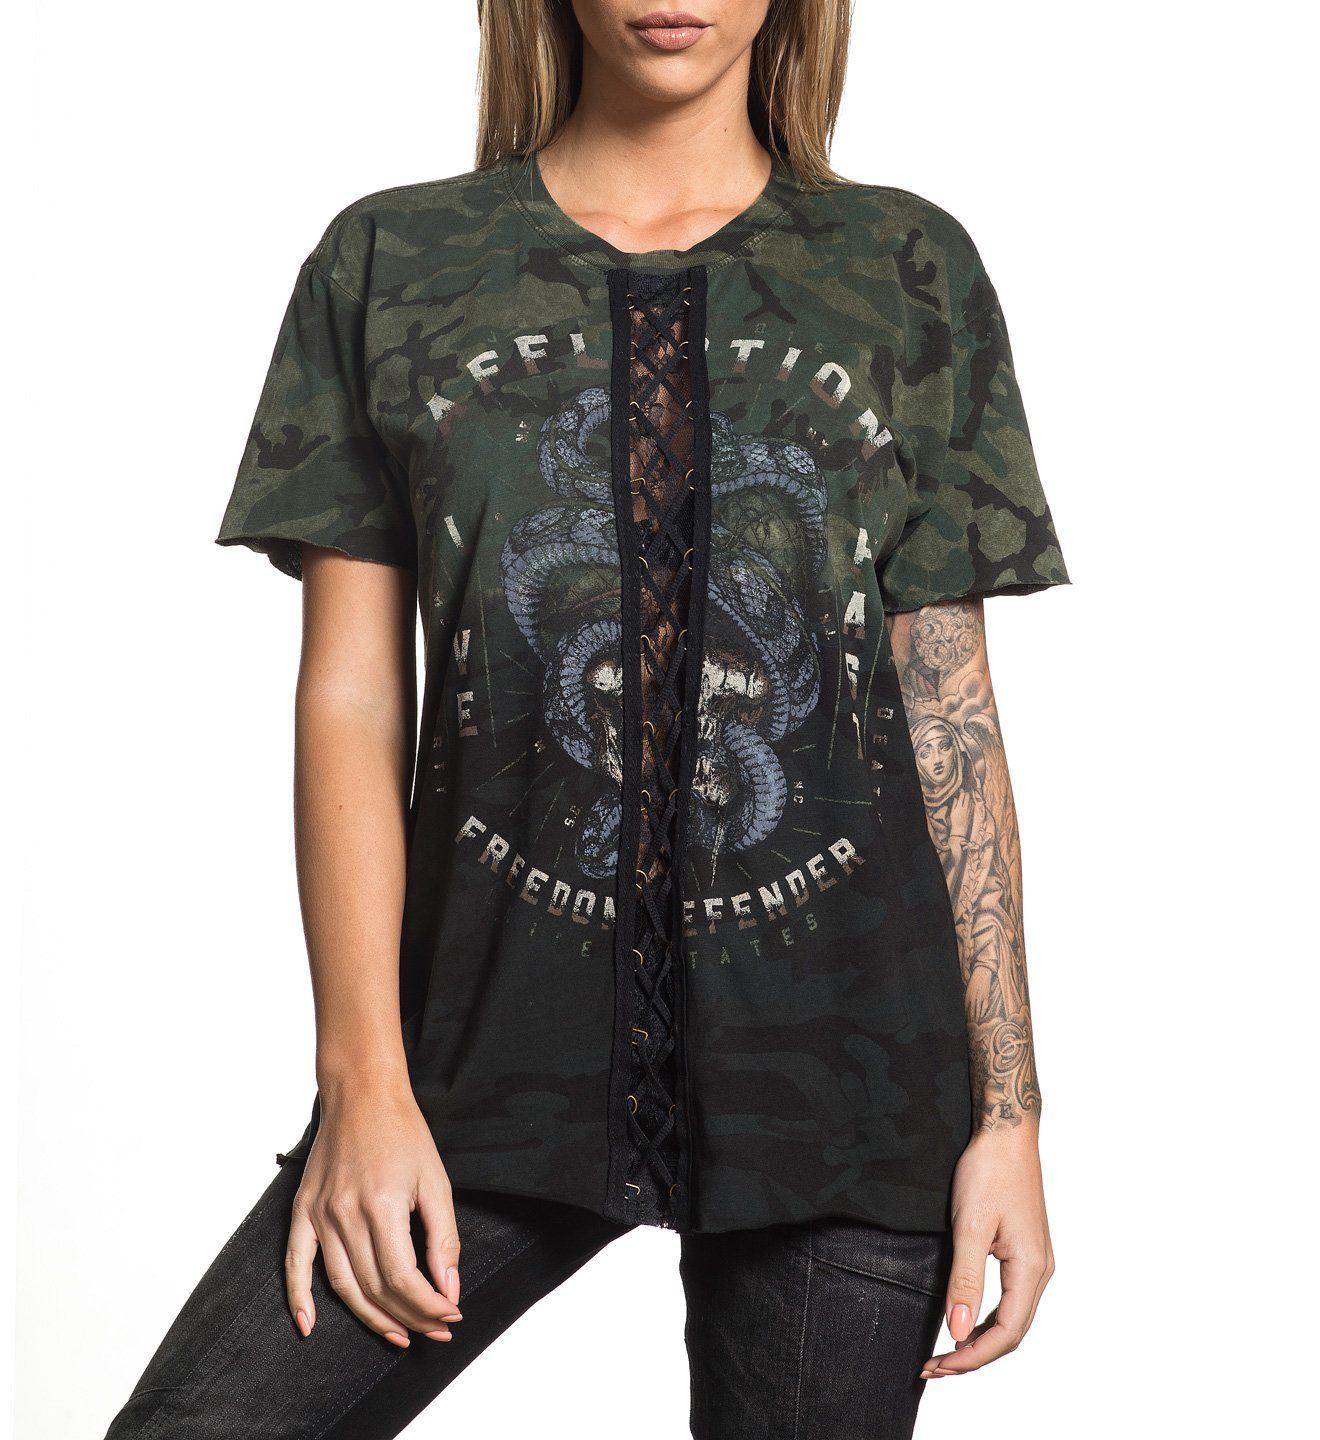 333513a5b2eacf Freedom Defender Women s Short Sleeve Crew Neck Tee - Affliction Clothing